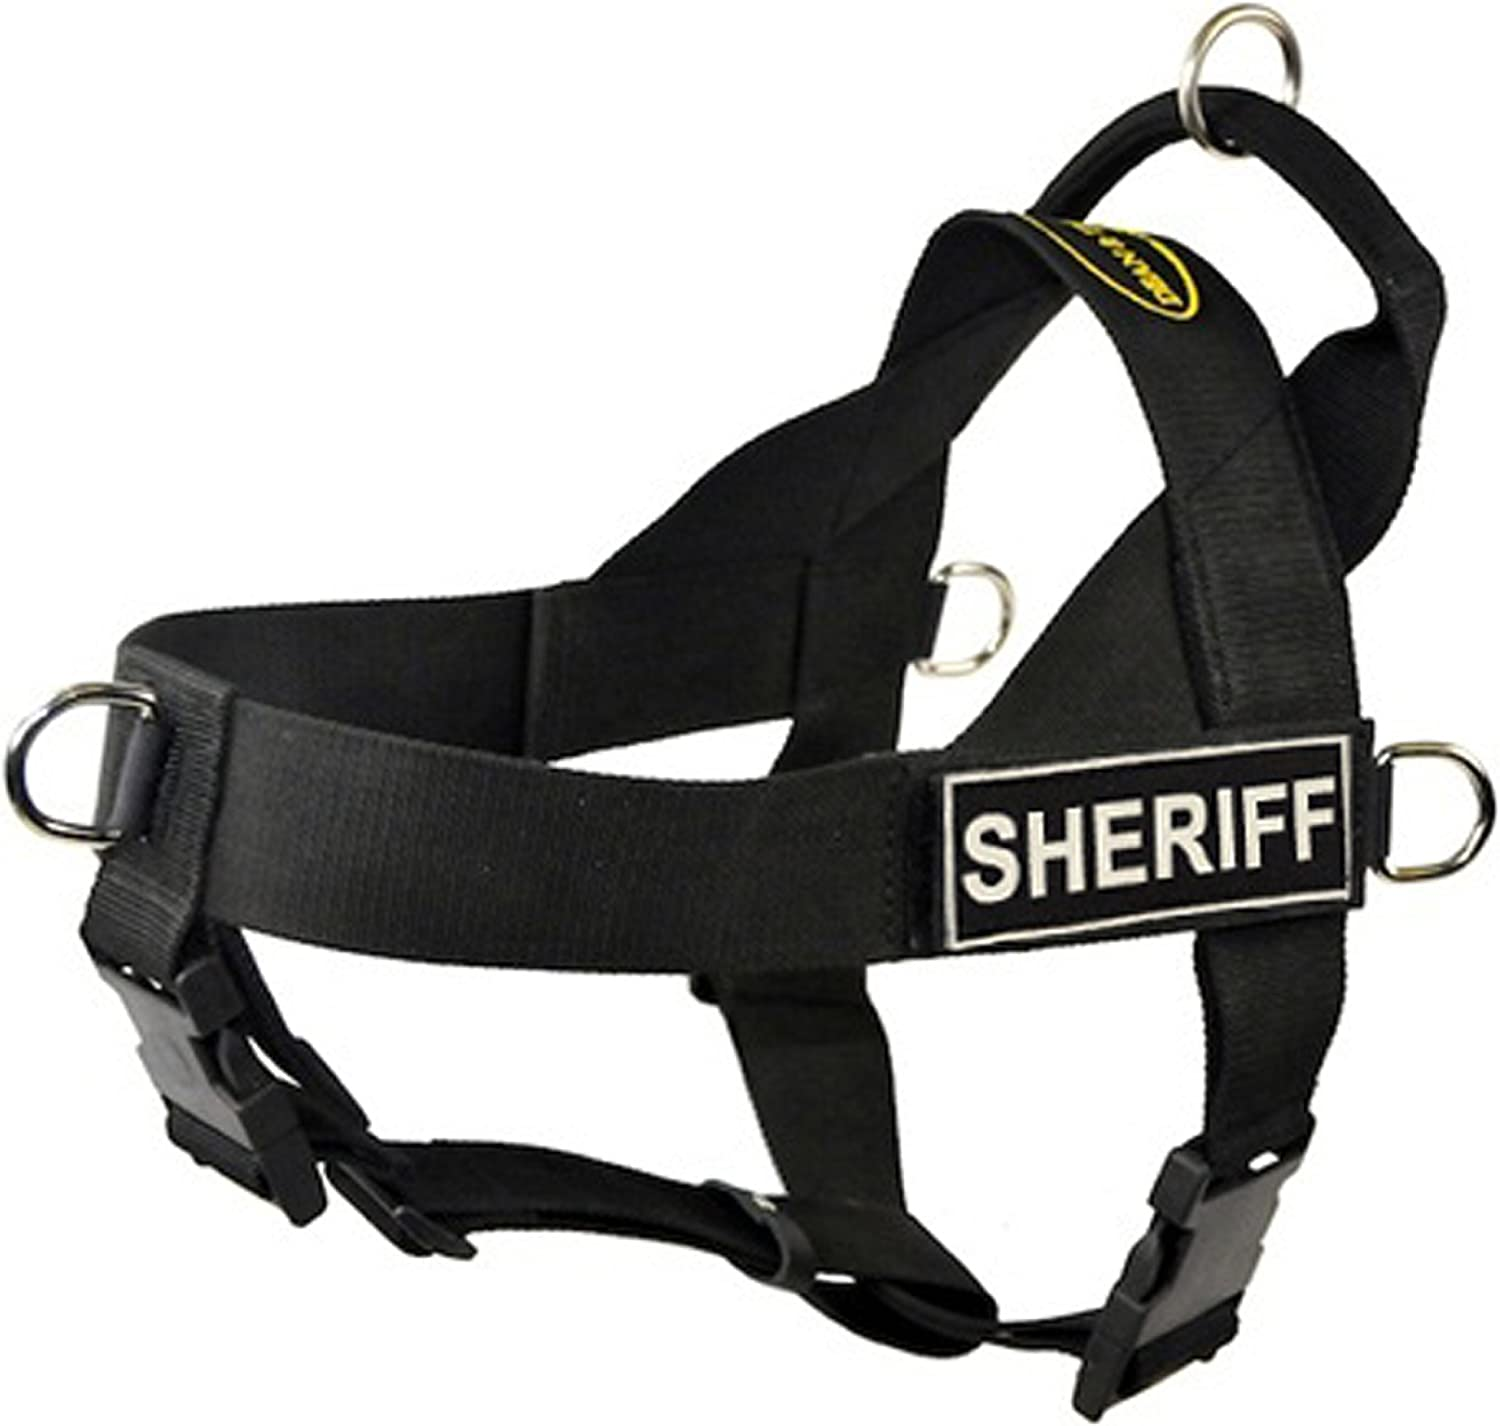 DT Universal No Pull Dog Harness, Sheriff, Black, XLarge  Fits Girth Size  91cm to 119cm